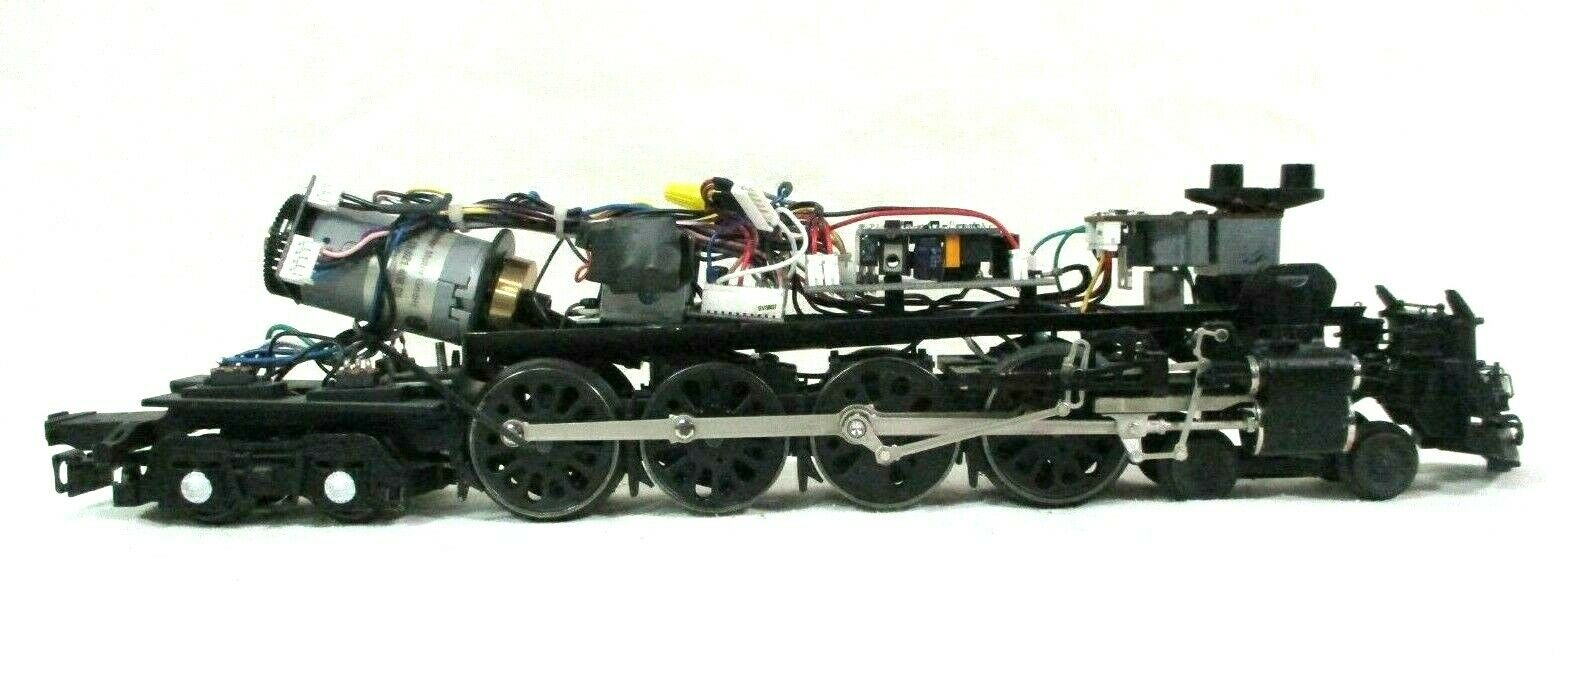 Lionel 6-11131 UP 4-8-4 fef Northern Steam Locomotive No Top - Tested, Runs Well